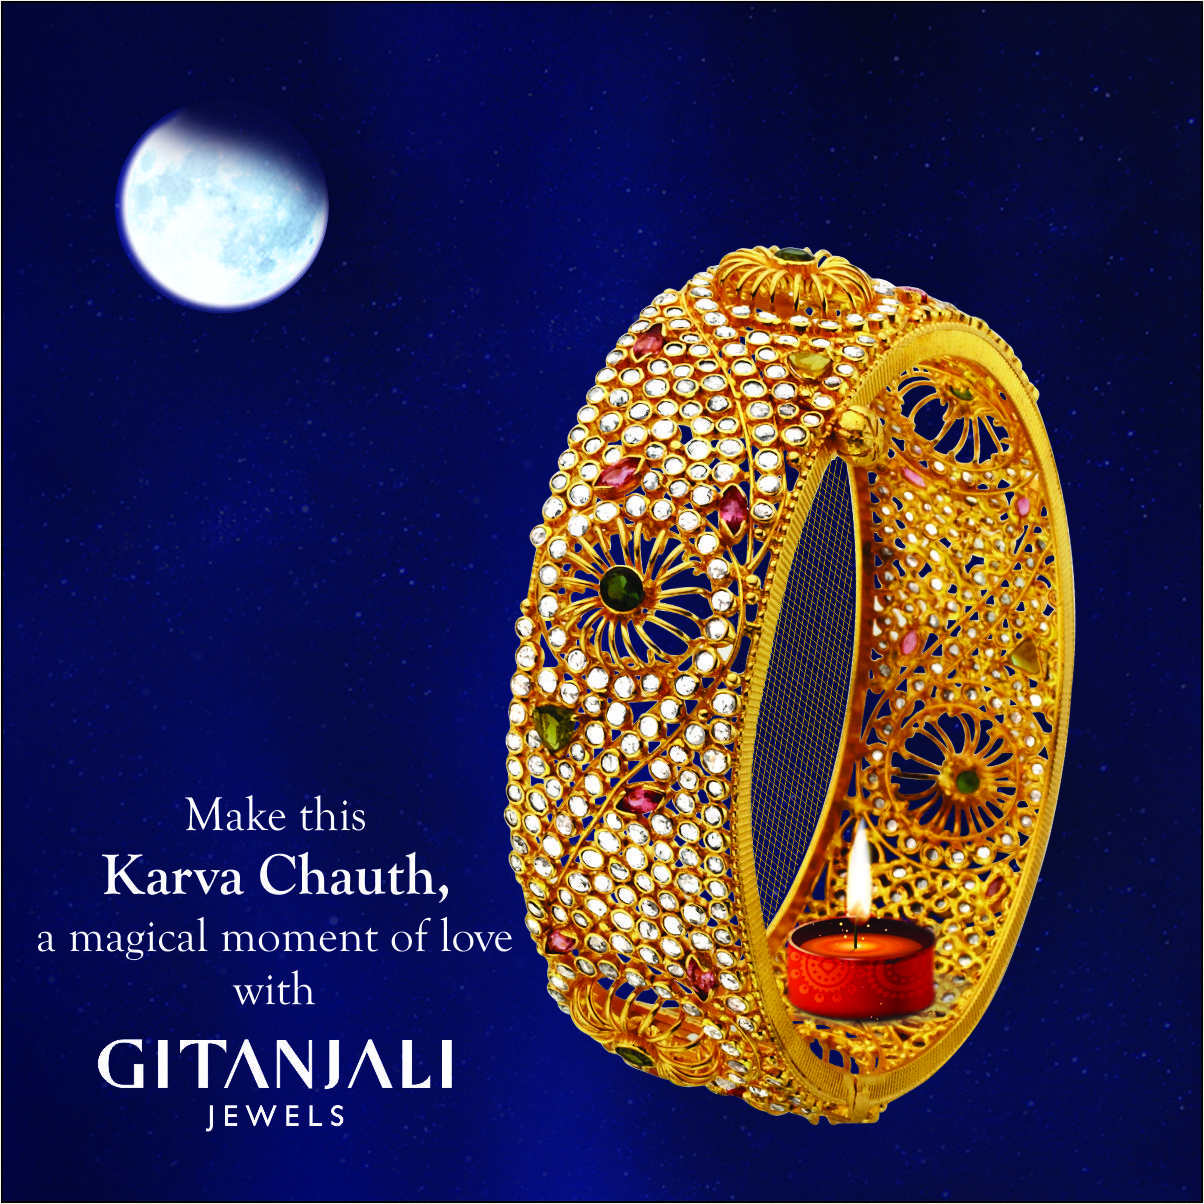 Gitanjali Jewels Facebook Page For Karvachauth Gold